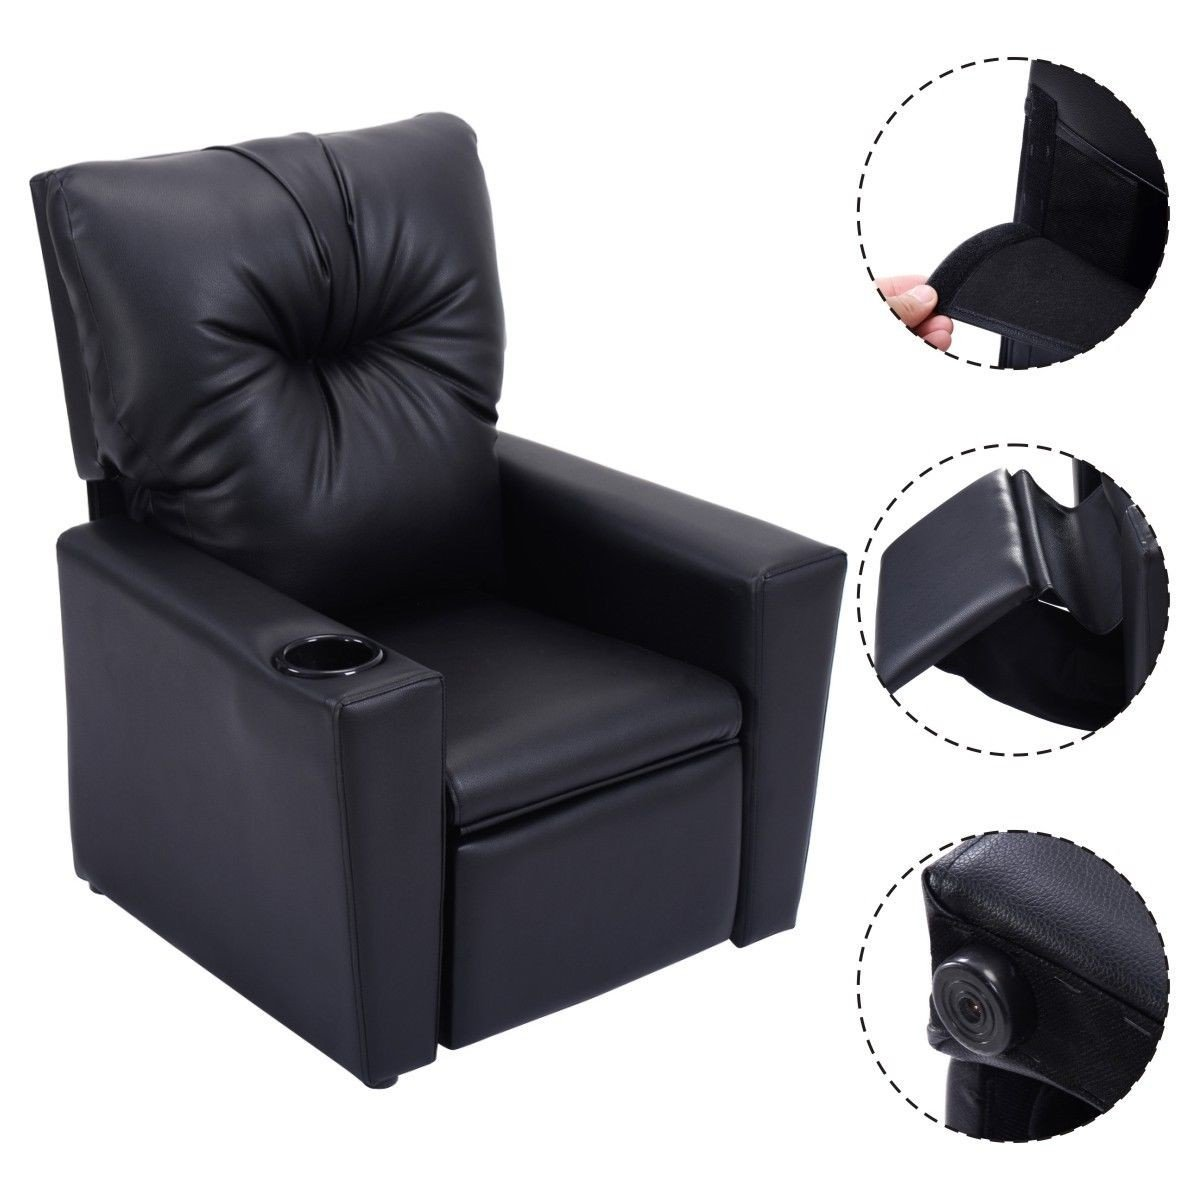 Kids Recliner with Cup Holder Black Leather Sofa Chair Recliners Chairs for Children